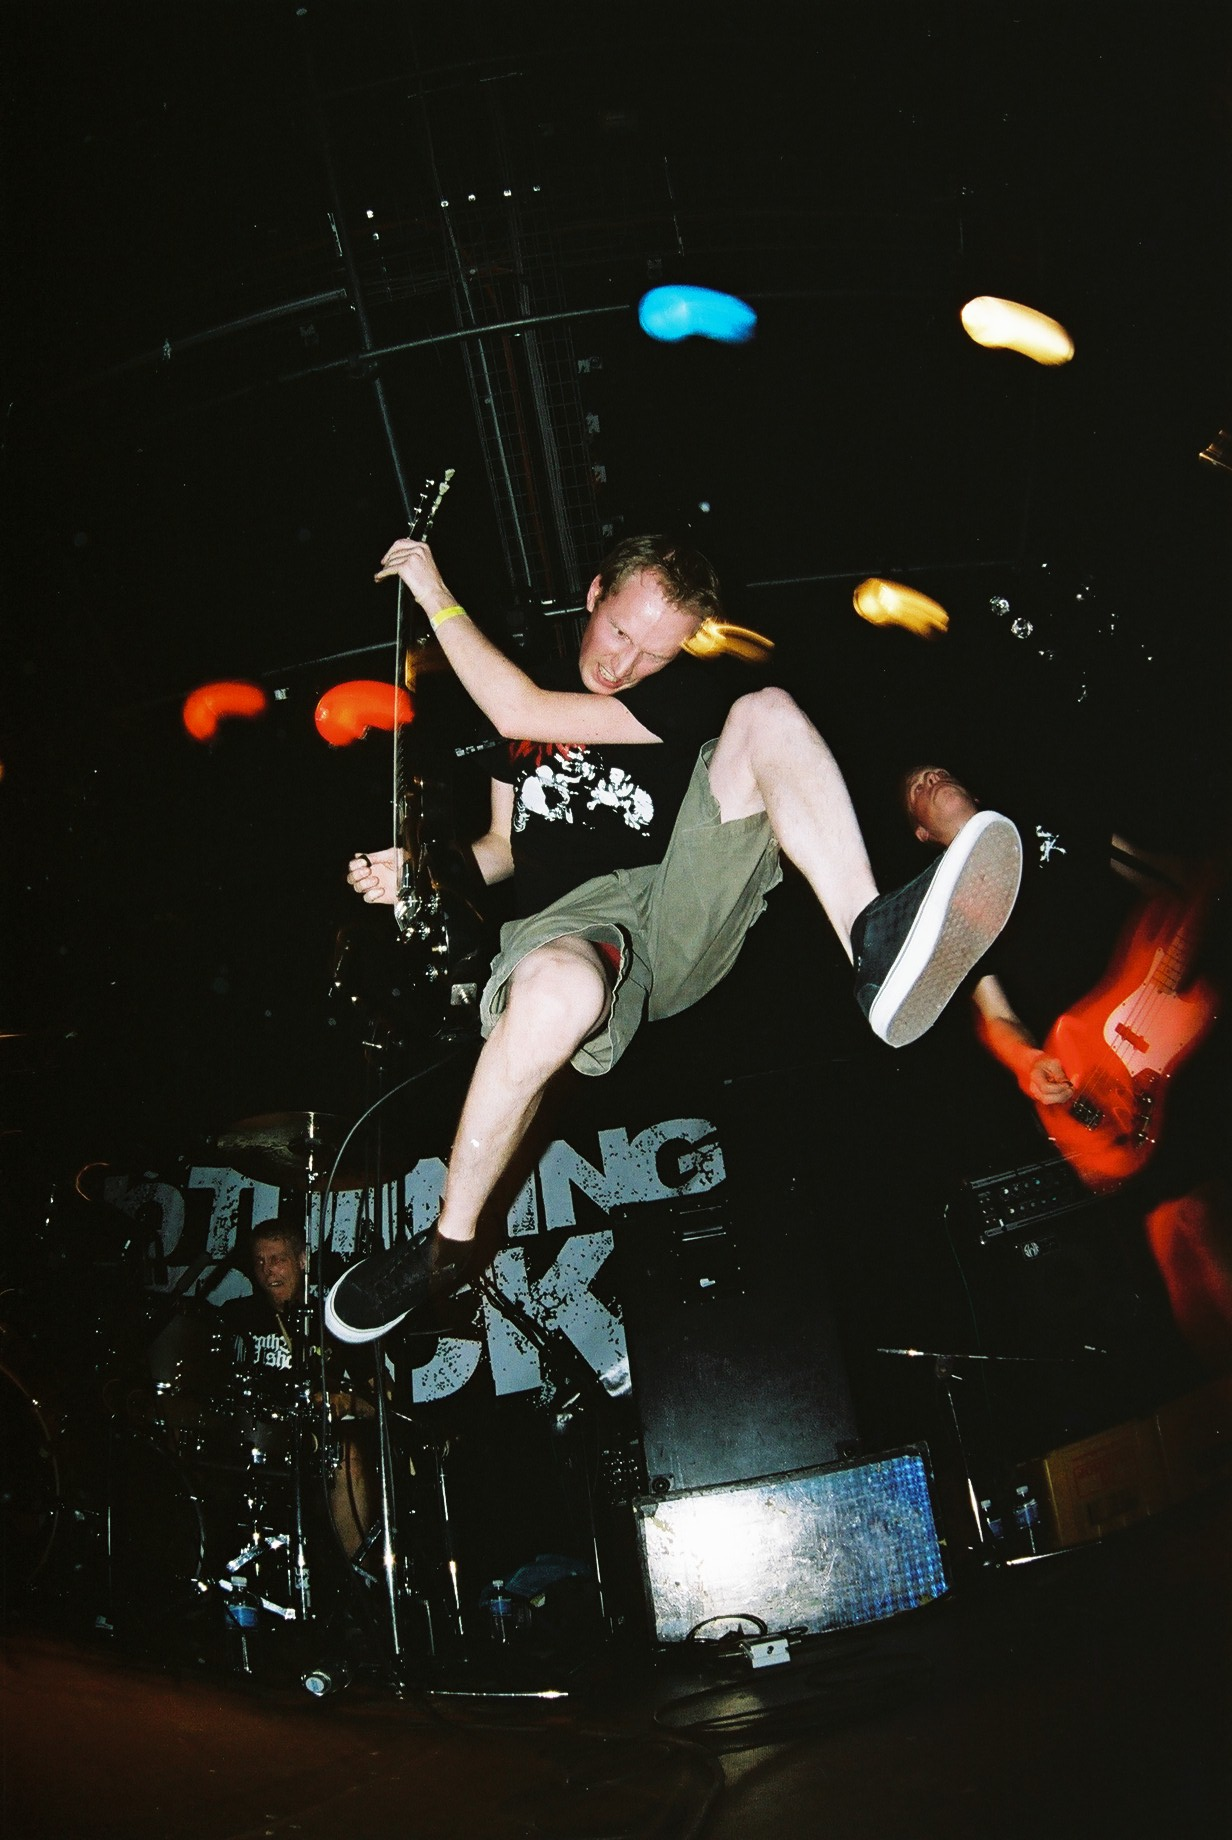 2006.12.16 no turning back / the ice age is coming fest @ luzern switzerland